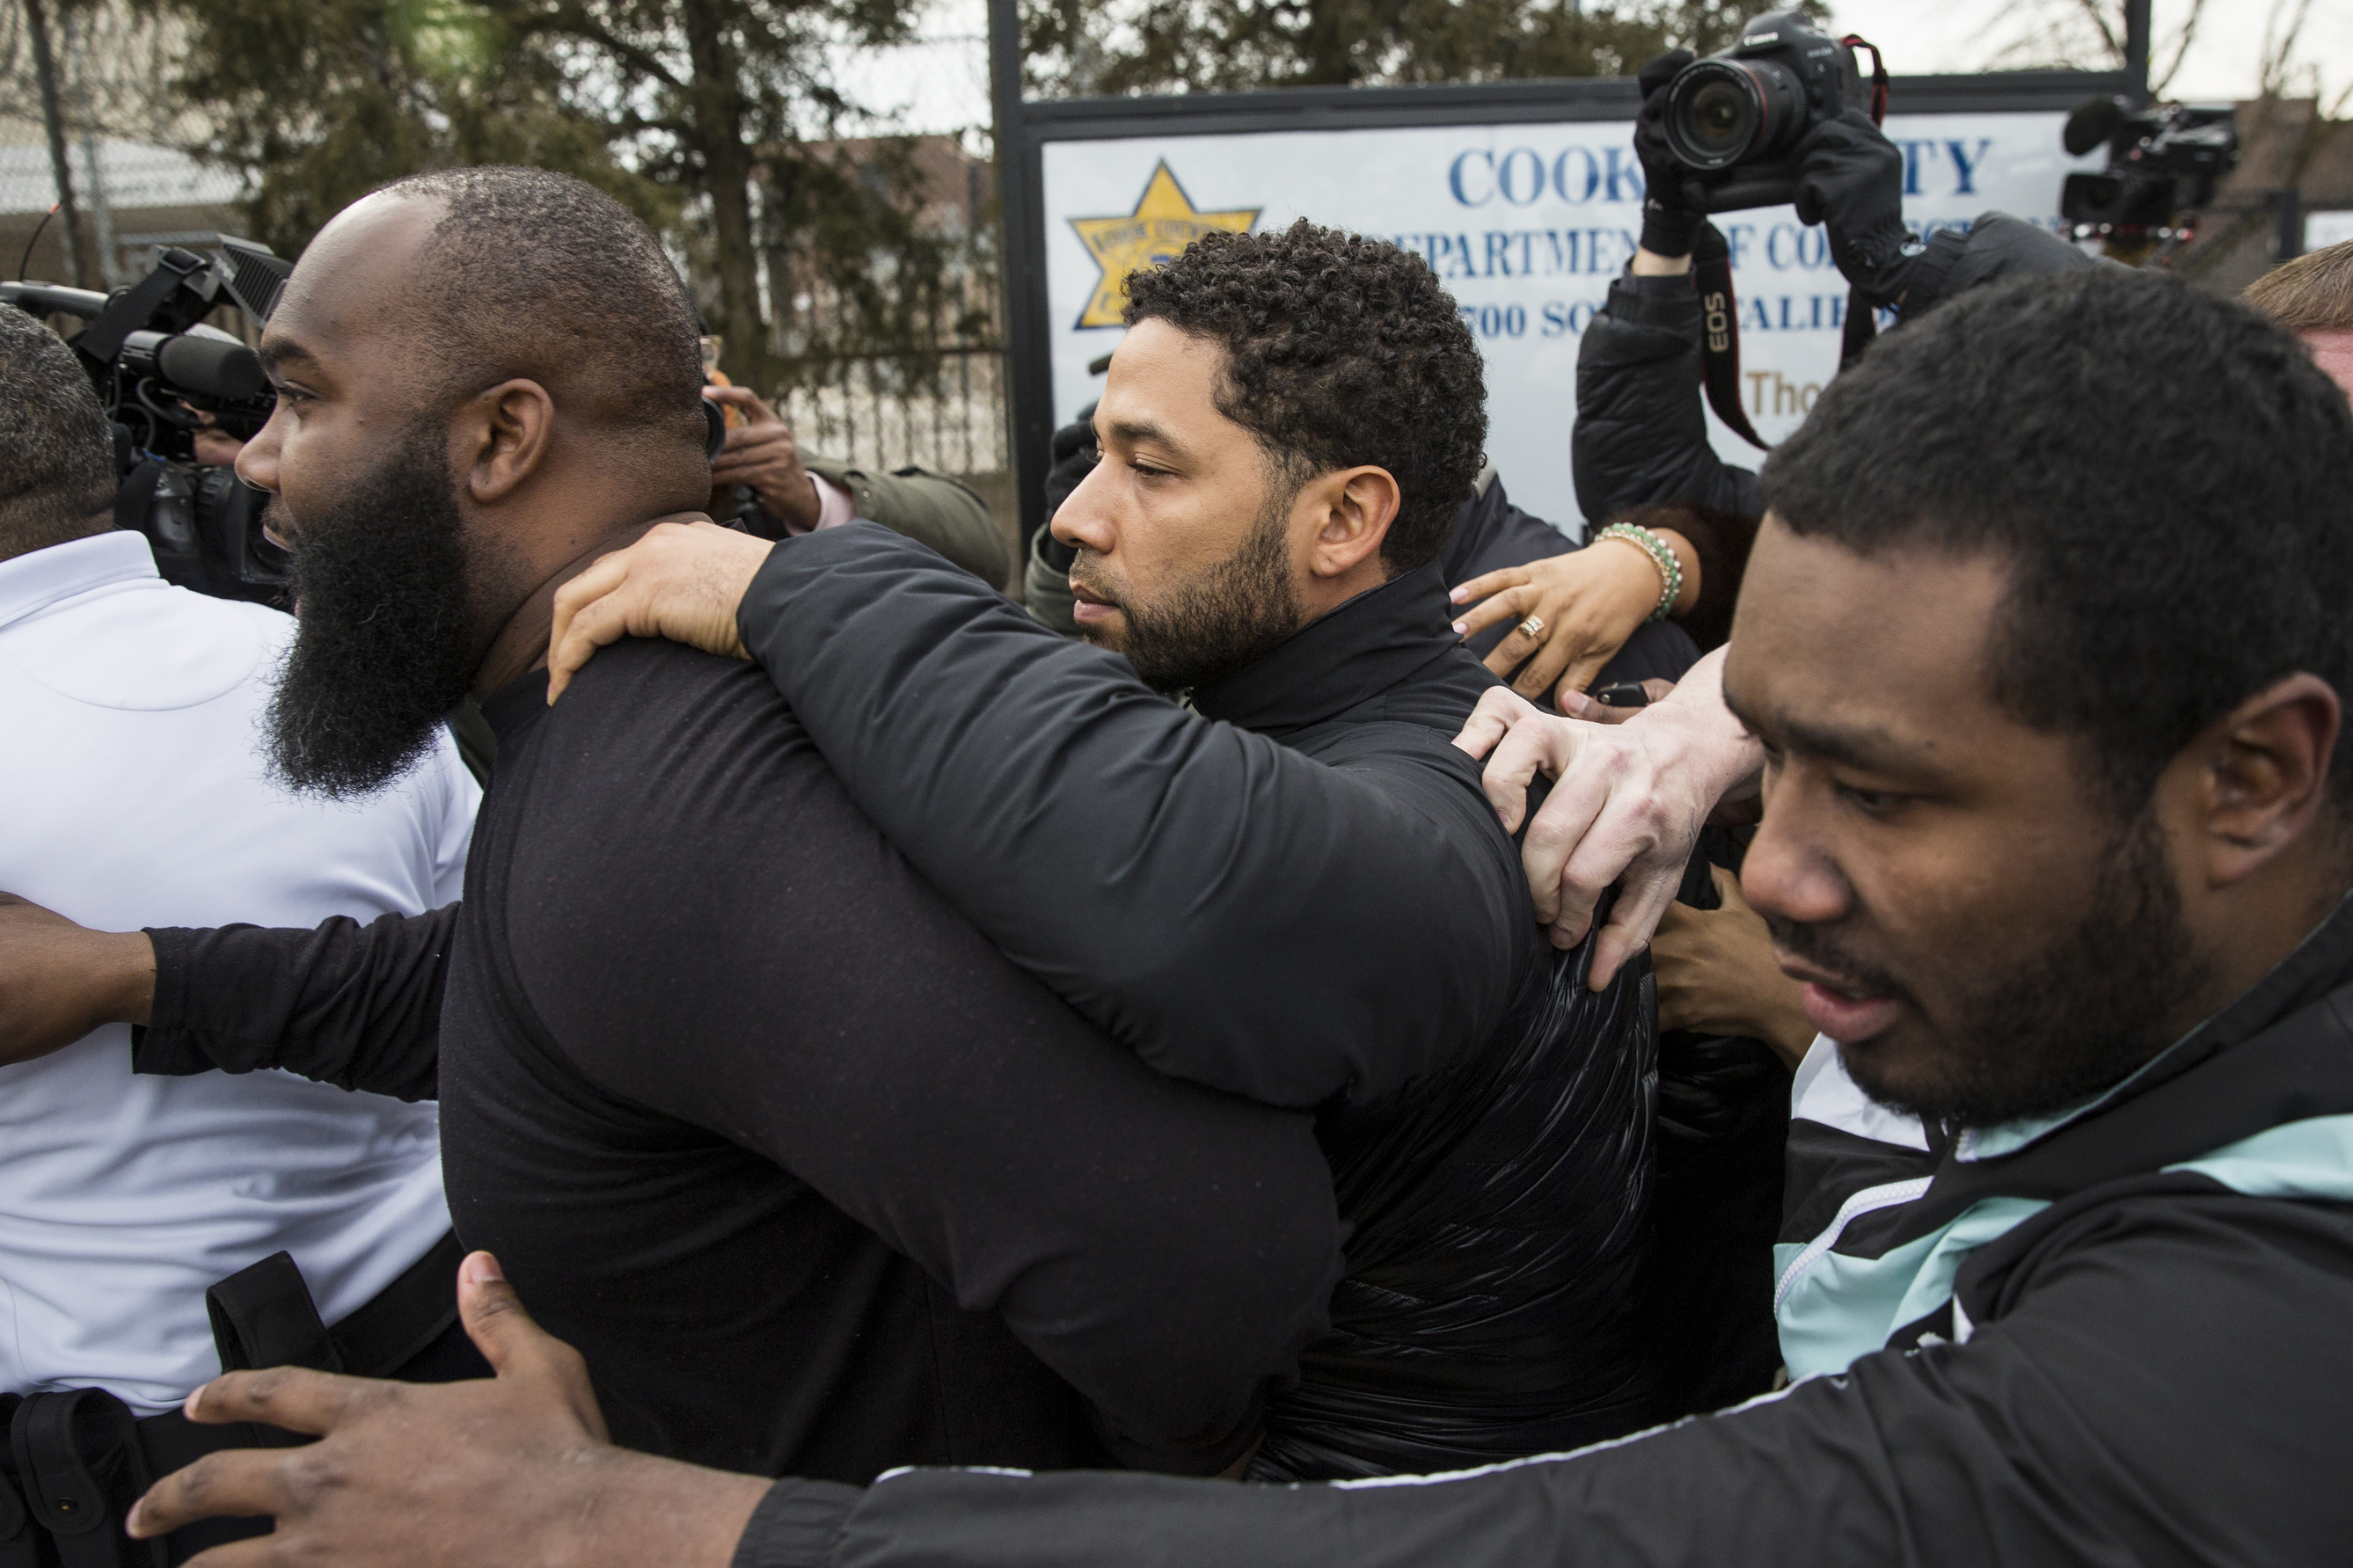 """Jussie Smollett leaves the Cook County jail after posting bail in February 2019. A special prosecutor investigation reviewing whether he staged a hate crime attack, and State's Attorney Kim Foxx's handling of the case, has keyed in on the """"Empire"""" actor's Google accounts, according to a search warrant filed last month."""